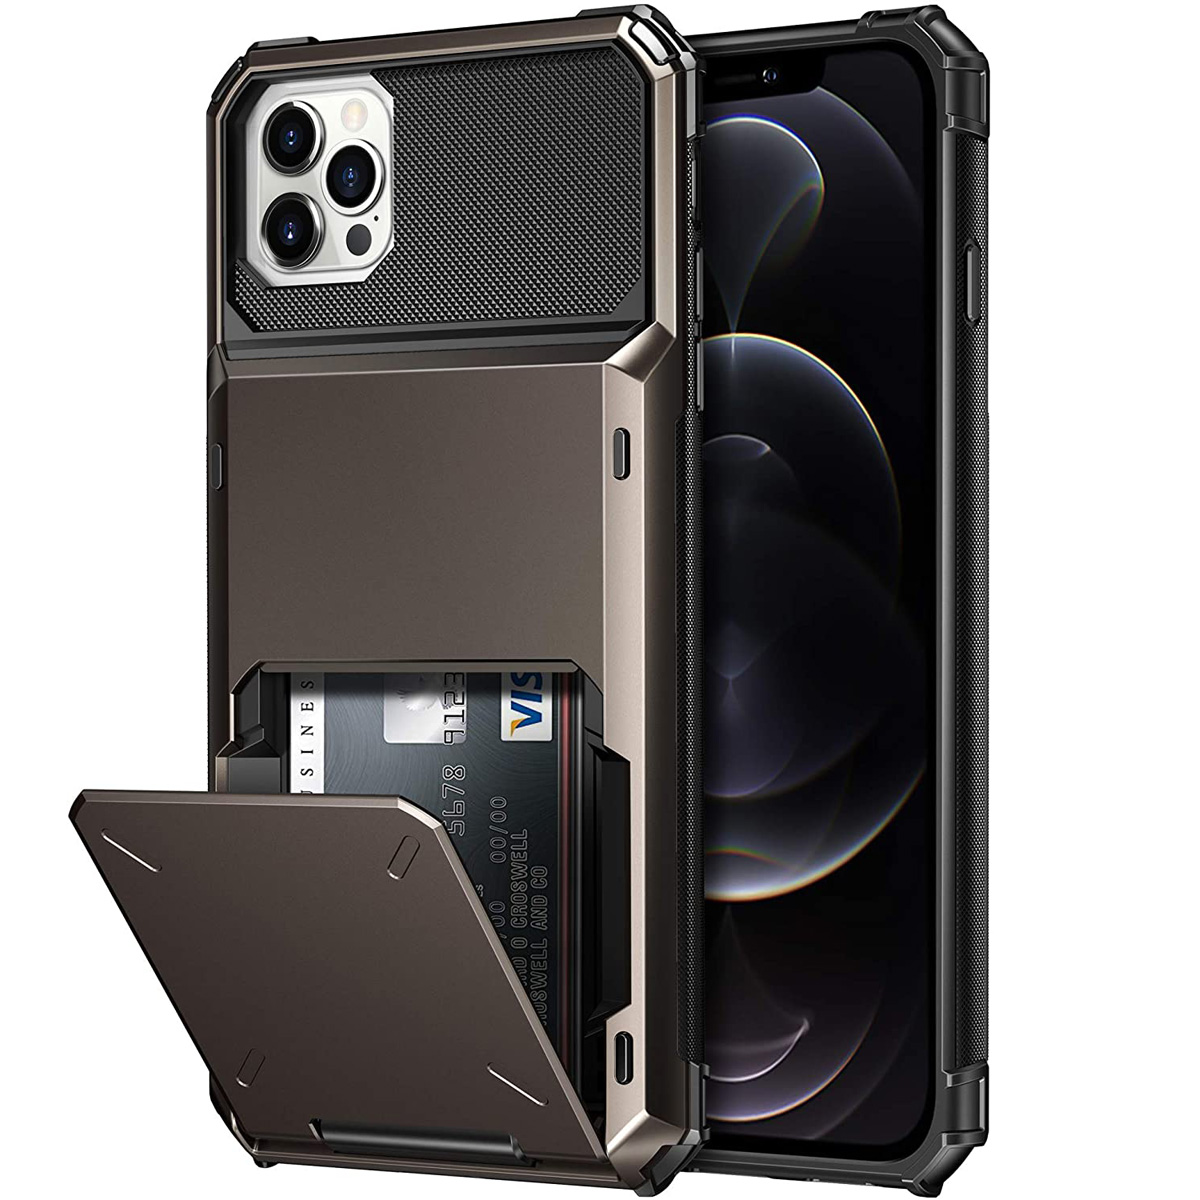 Business Armor Slide Wallet Card Slots Holder Cover for iPhone 12 Mini 12 11 Pro Max 7 8 Plus X XS Max SE 2020 Case Phone Cases